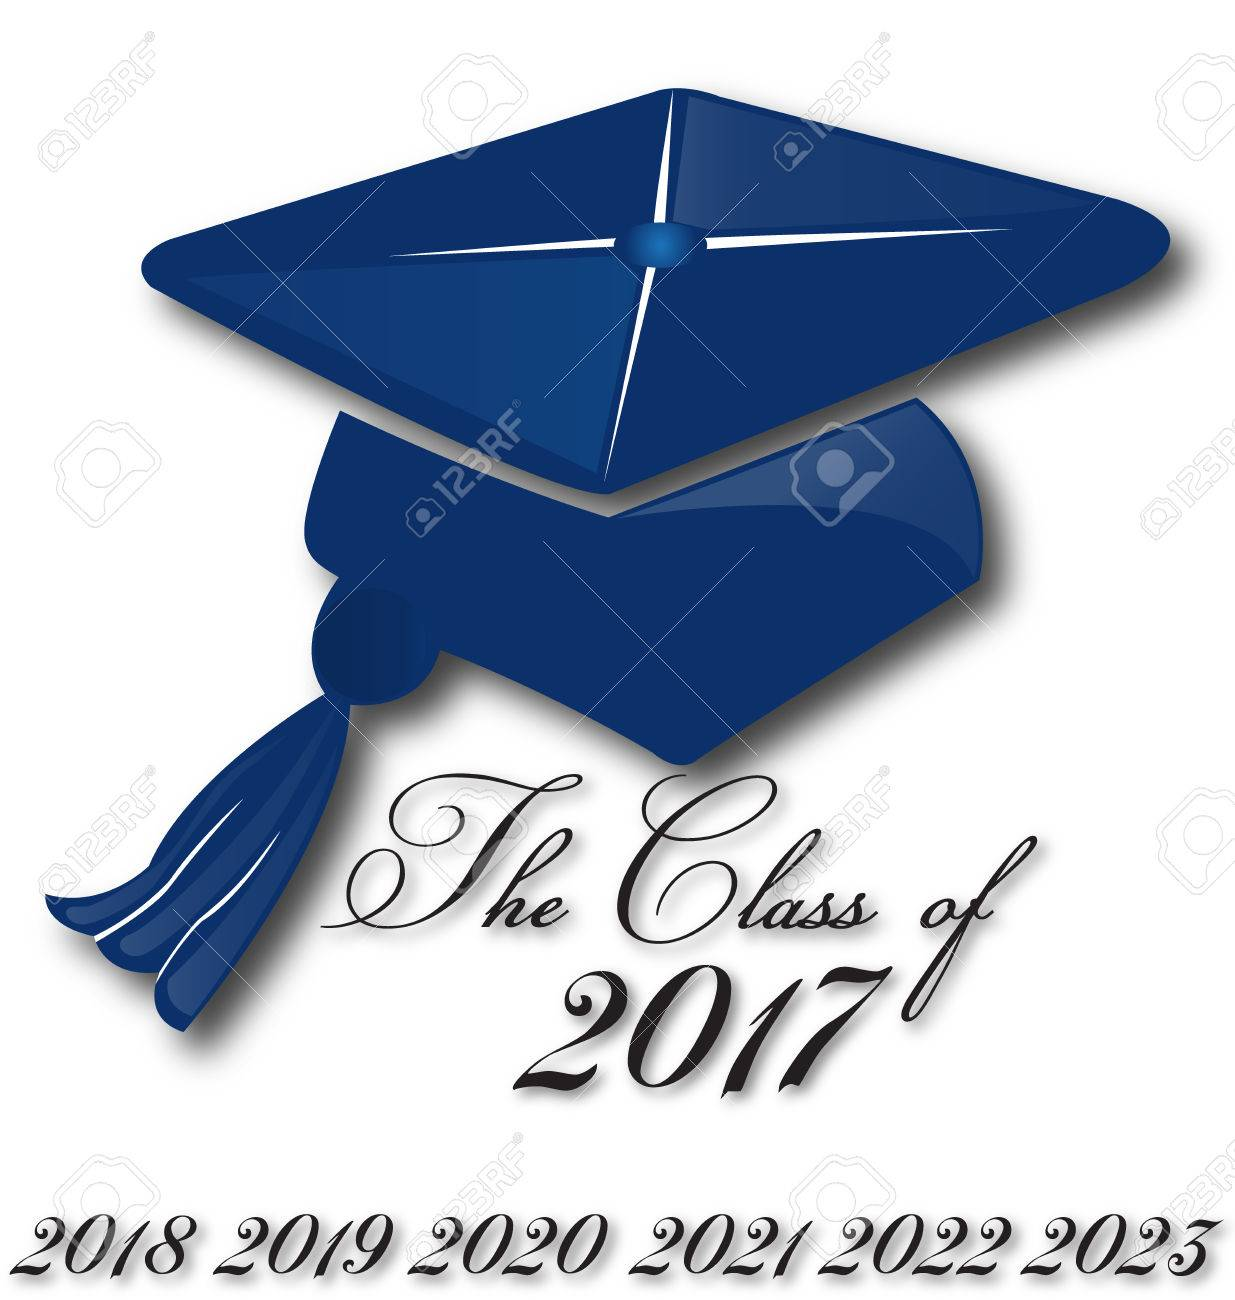 Graduation Music 2020.Graduation Hat For The Class Of 2017 2018 2019 2020 2021 2022